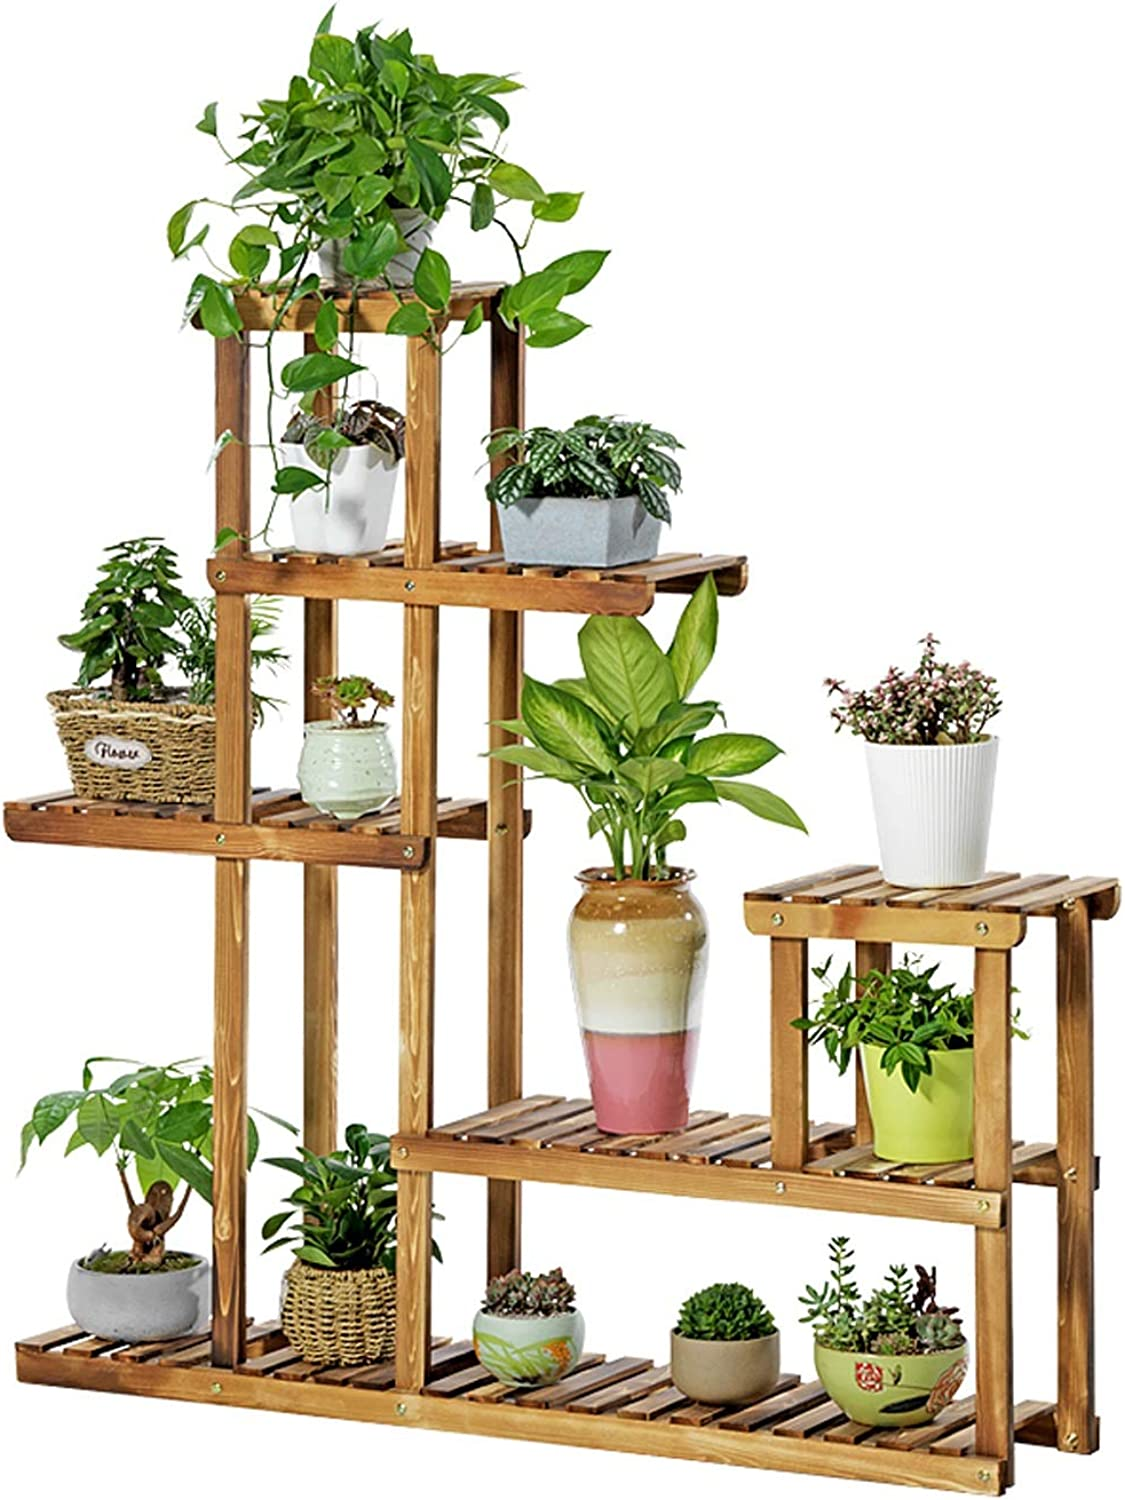 Flower Frame Solid Wood Multi-Storey Indoor Multi-Function Living Room Combination Plant Potted Green Plant Balcony 120CM  25CM  120CM